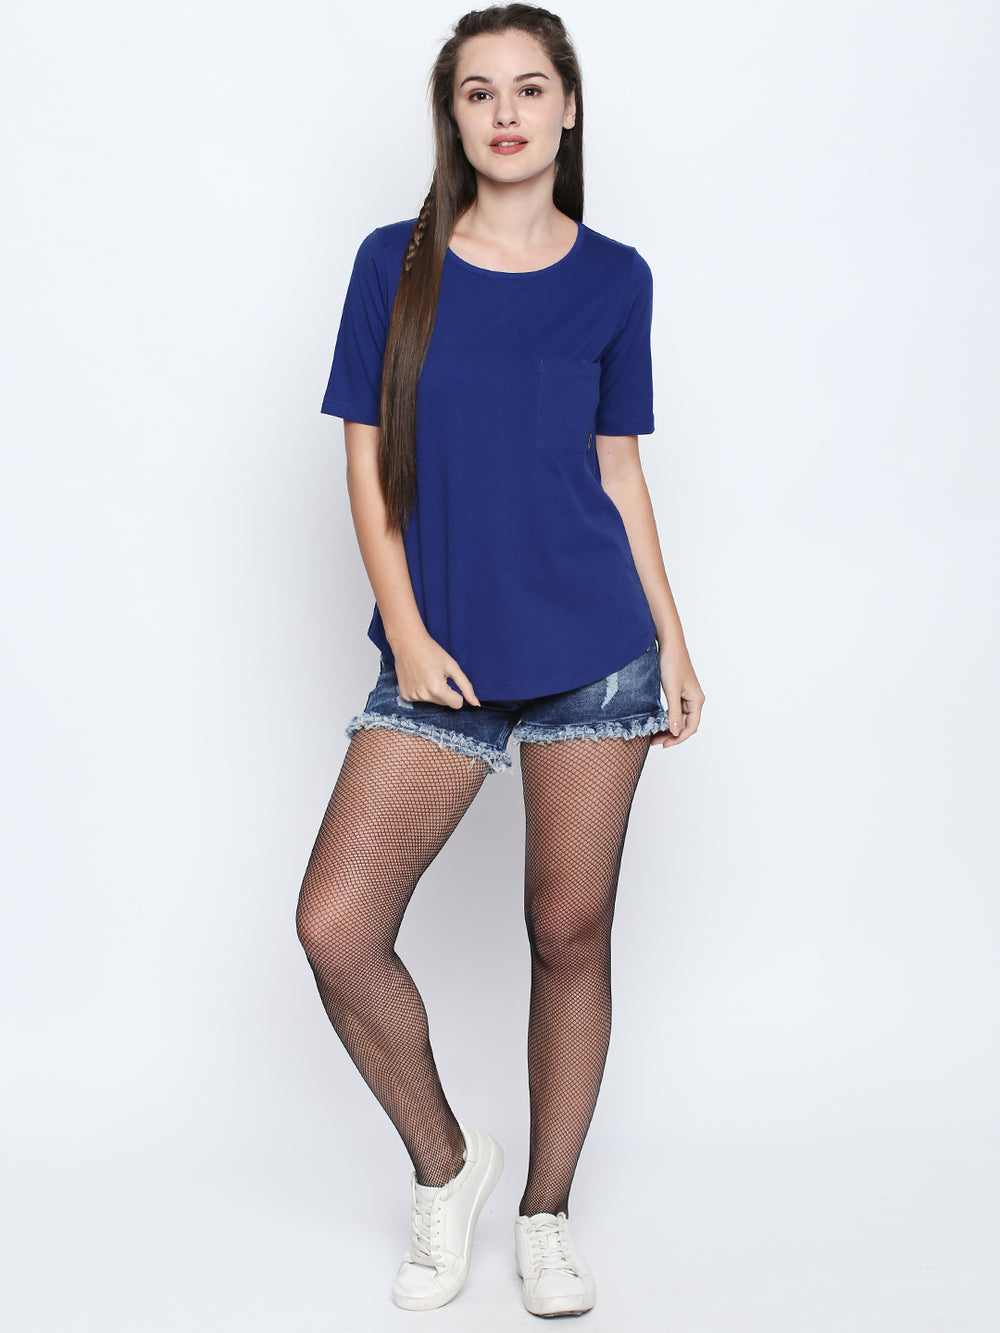 Disrupt Royal Blue Cotton Half Sleeve T-Shirt For Women's